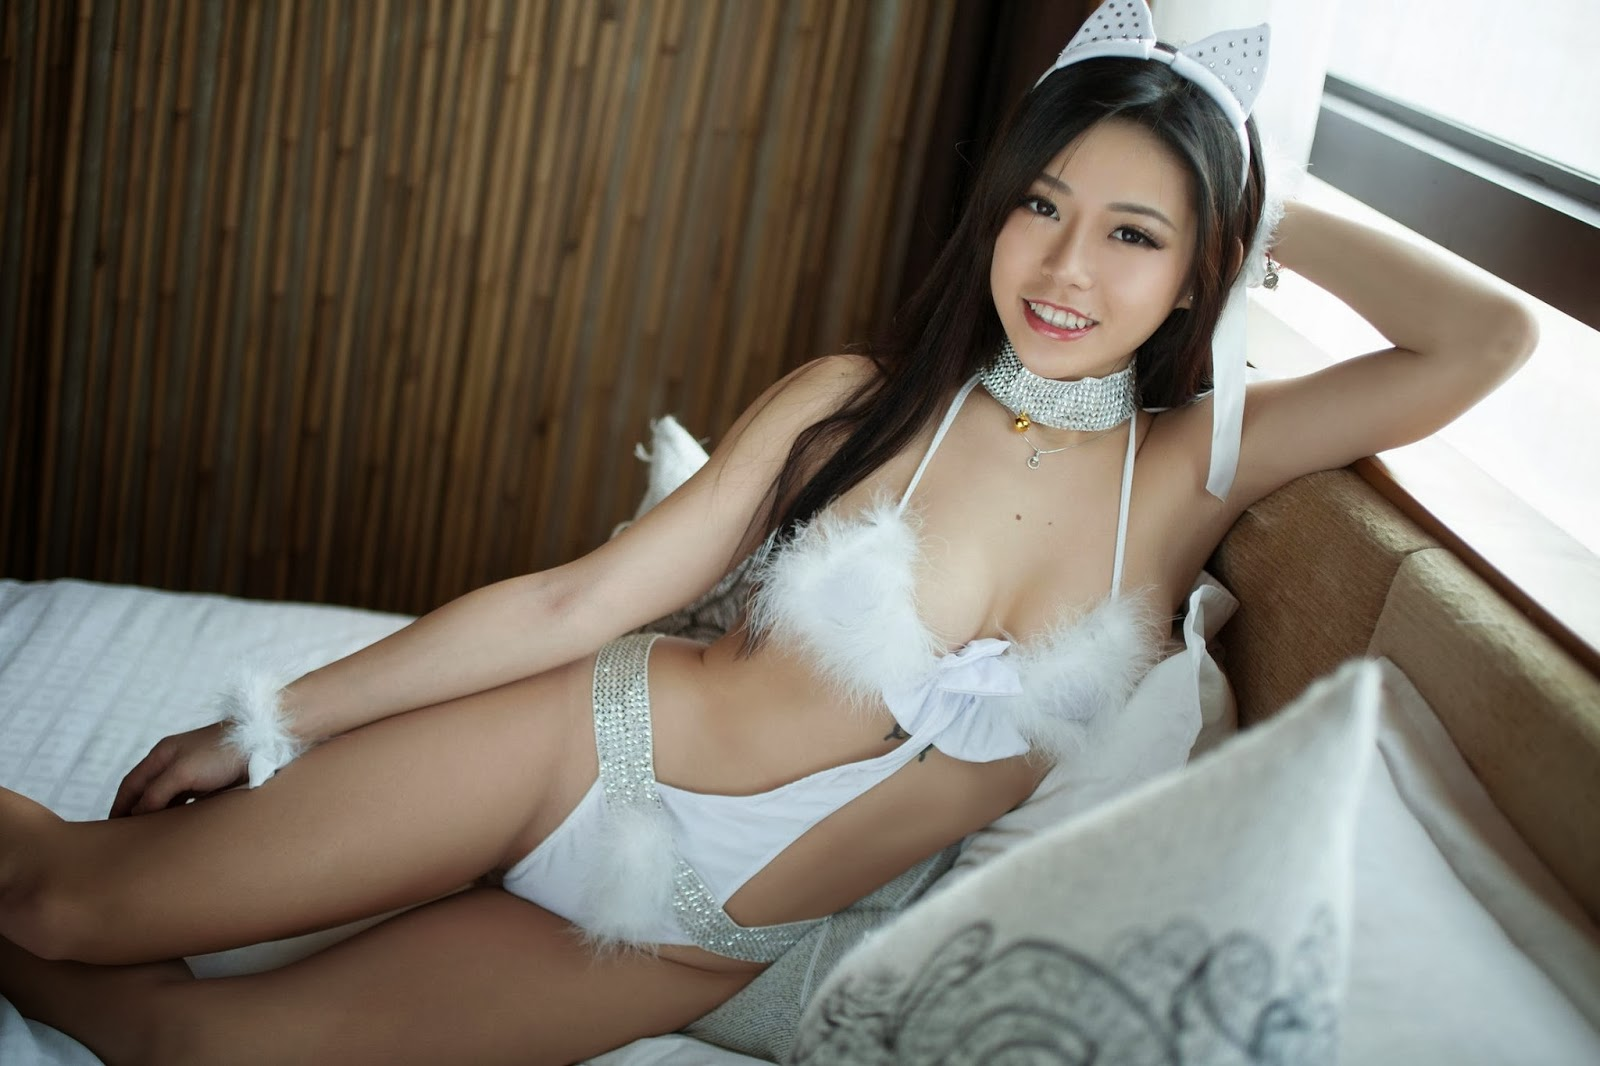 Chinese girl undressing